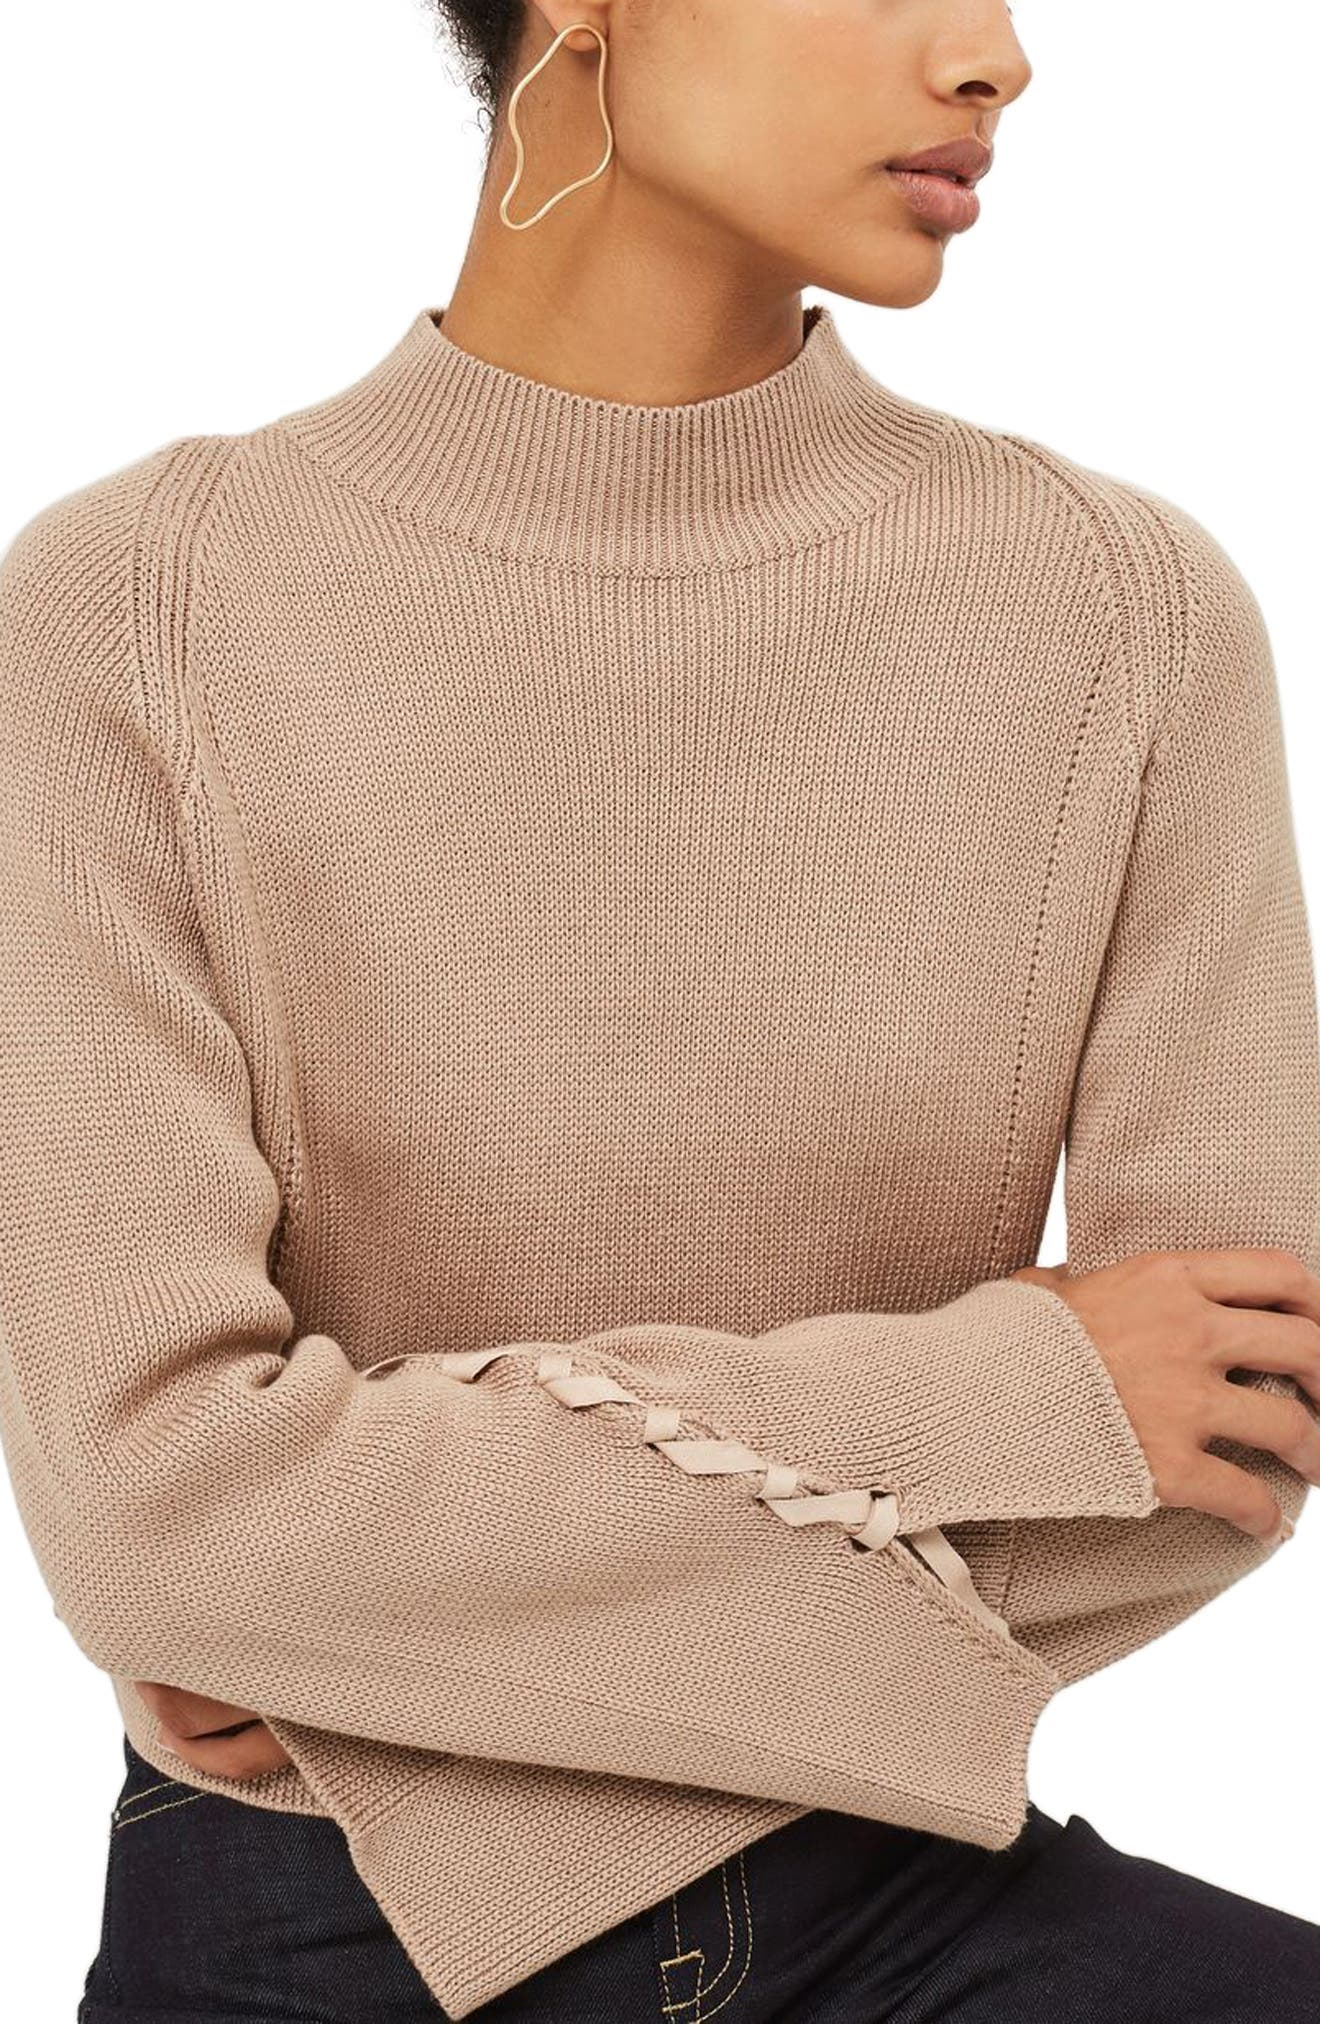 Lace Sleeve Funnel Neck Sweater,                         Main,                         color,